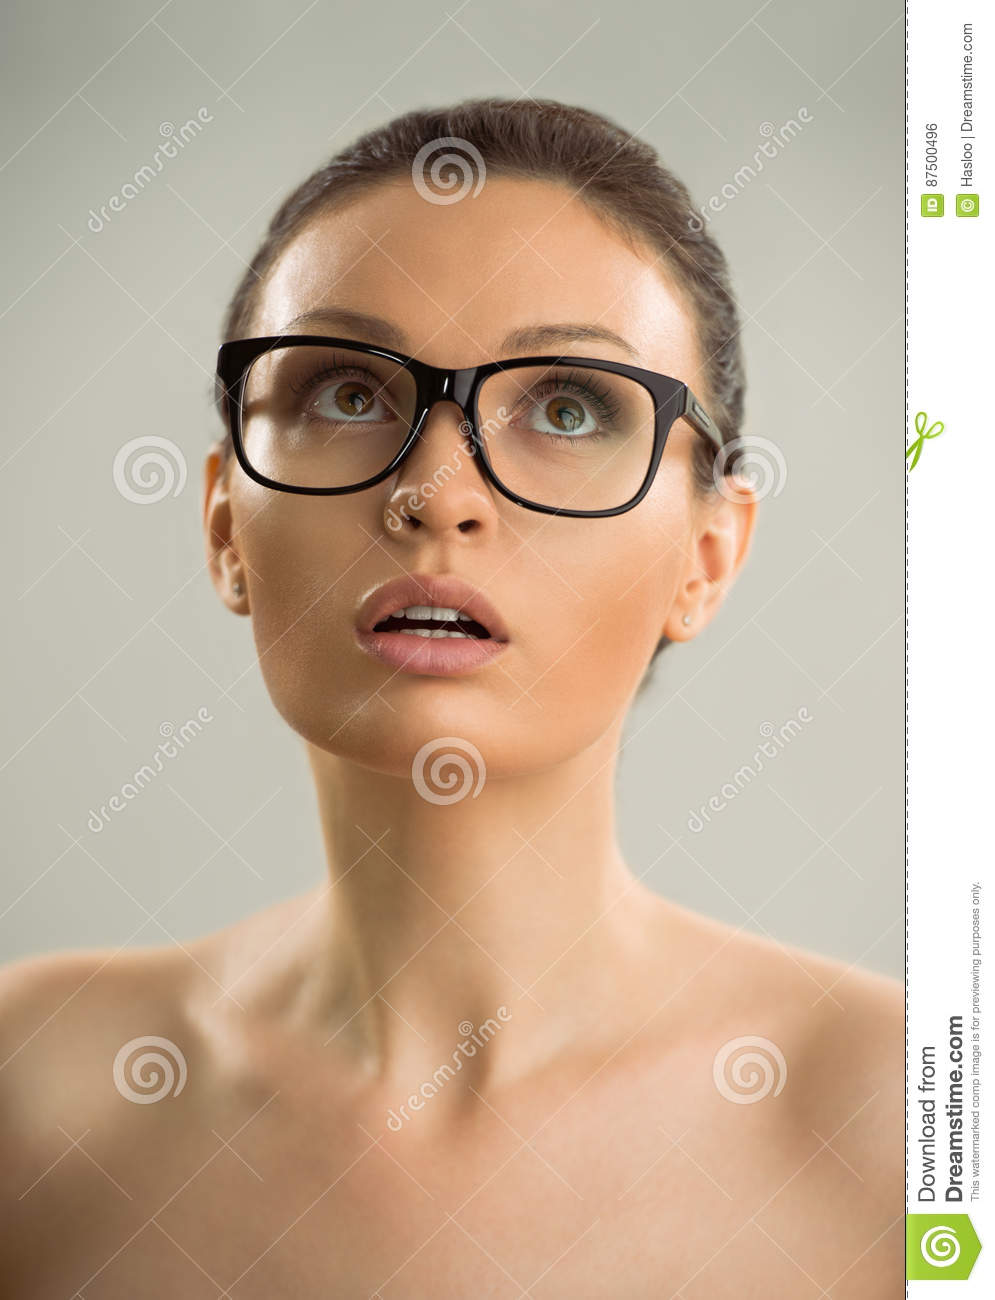 Sexy naked ladies wearing glasses